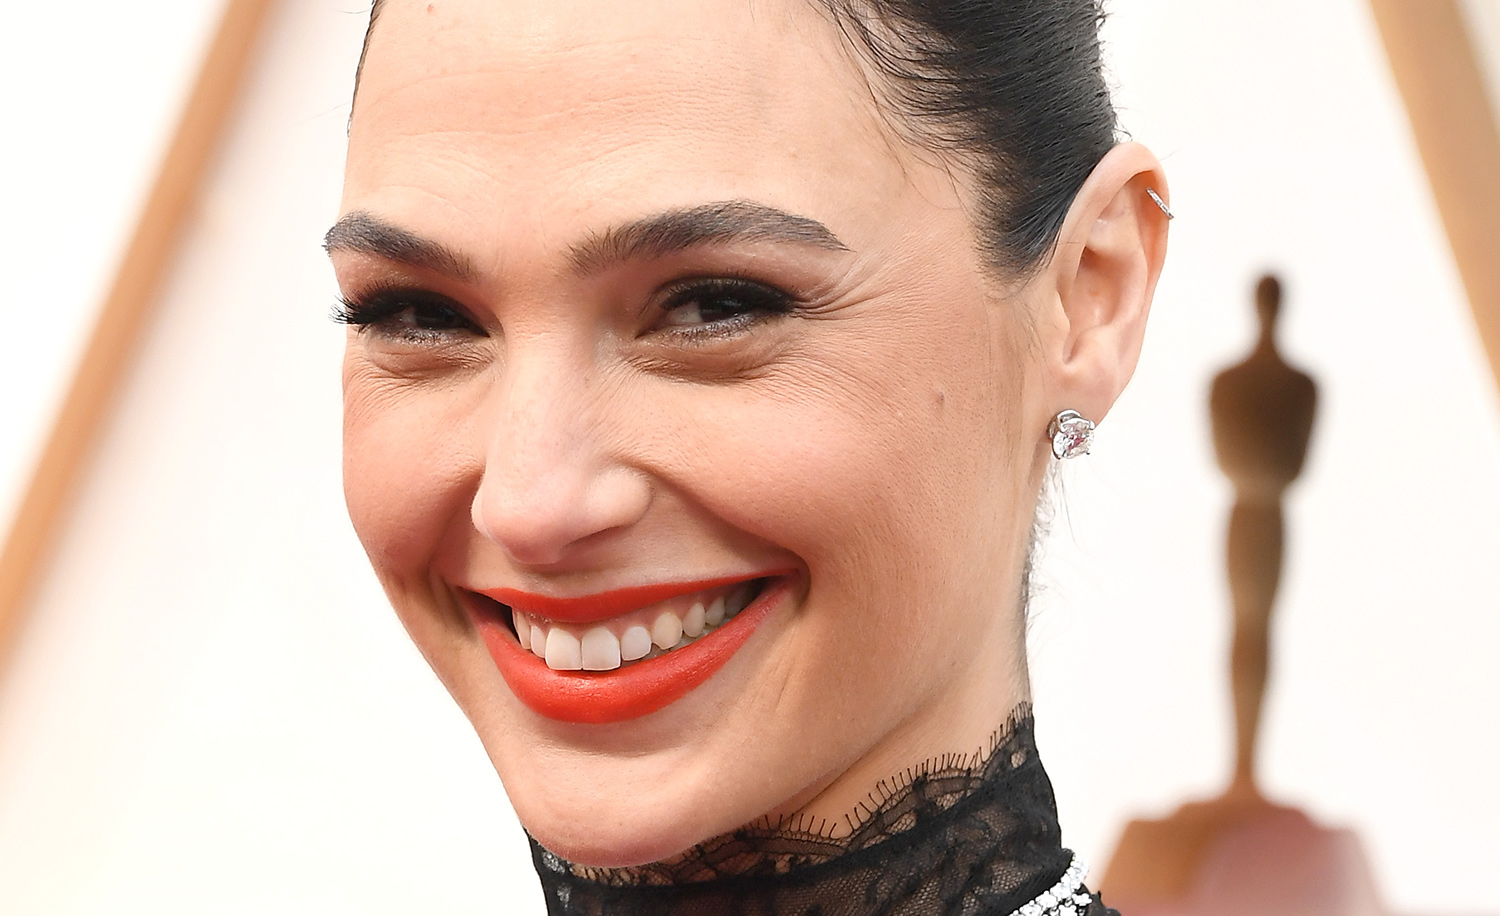 Gal Gadot arrives at the 92nd Academy Awards on February 09, 2020 in Hollywood, California. Steve Granitz/WireImage.